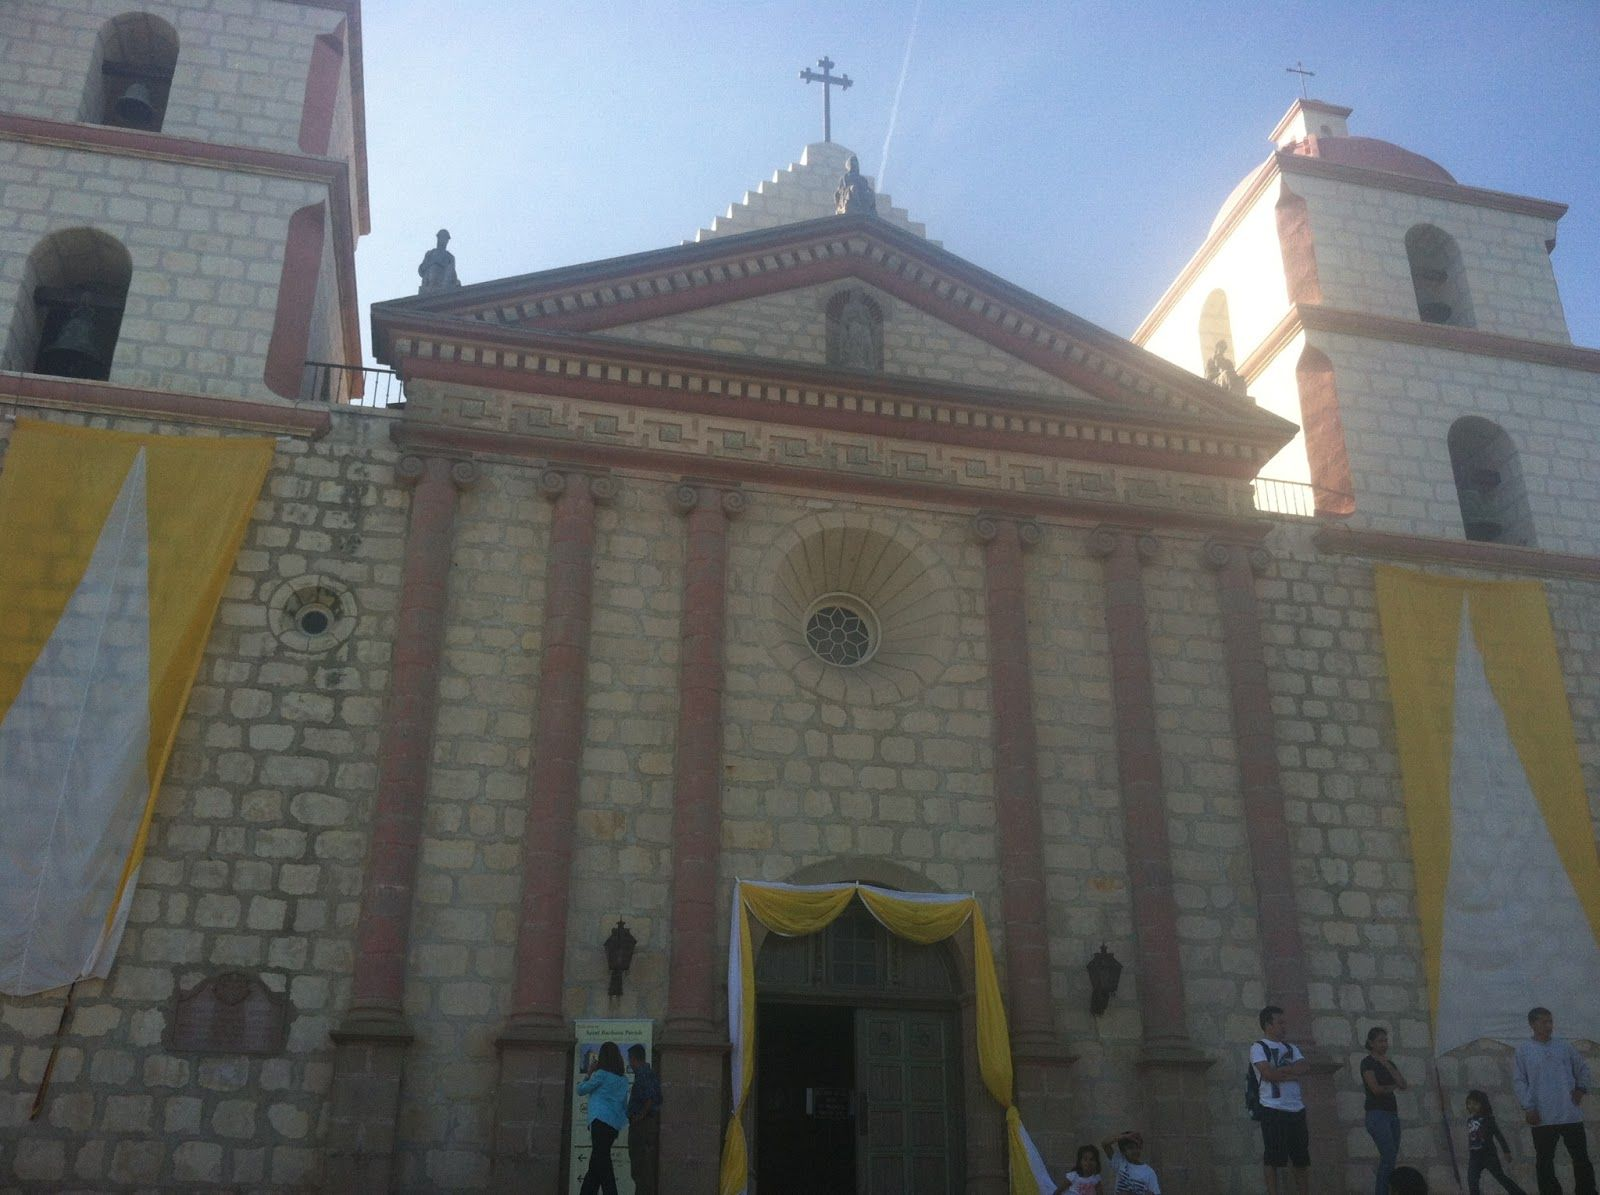 The Santa Barbara Mission. Travel to see The Queen of the California Missions